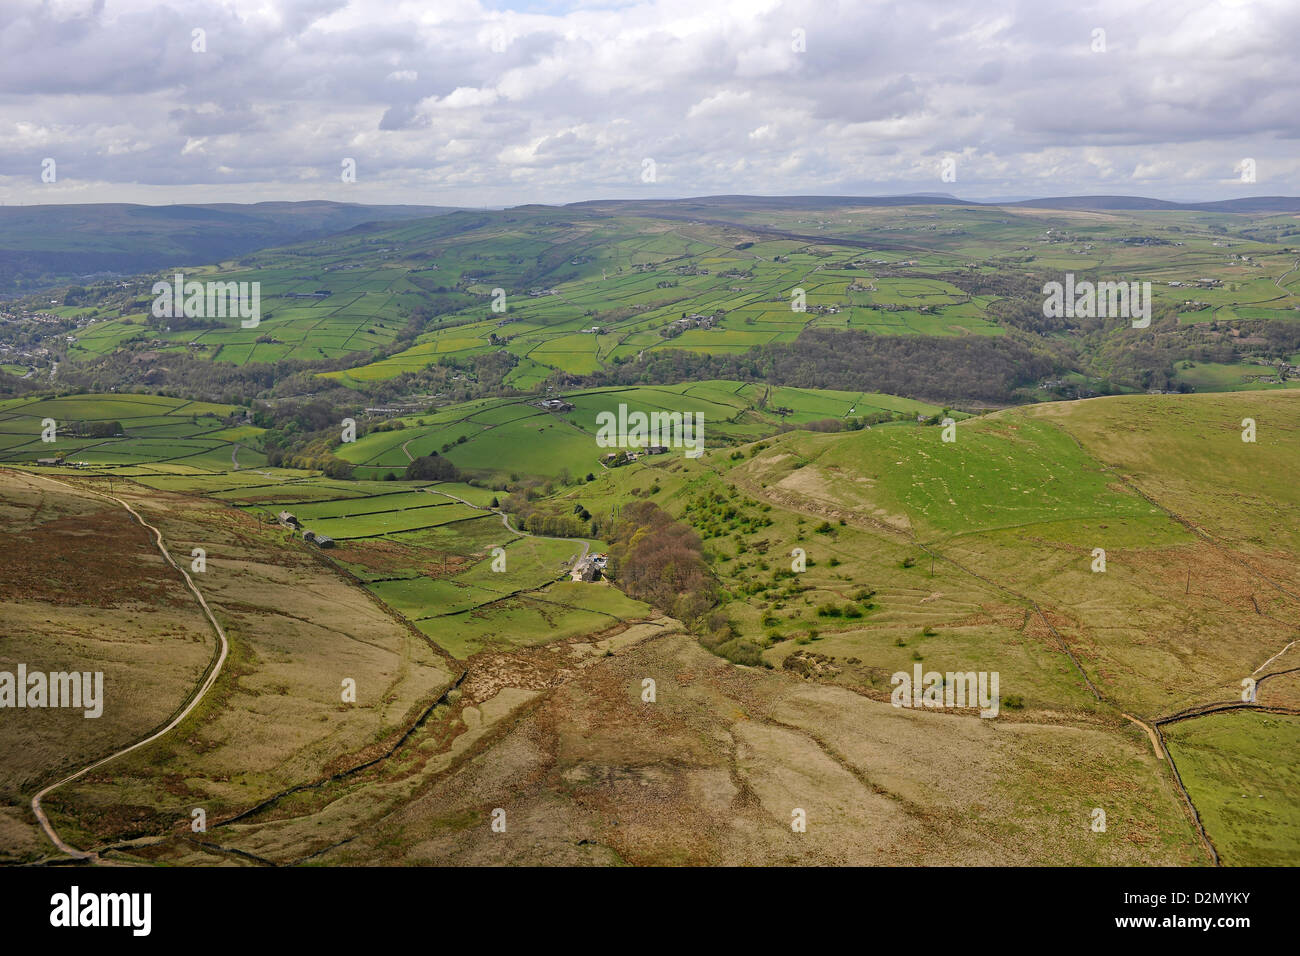 Aerial photograph of hills and countryside near Todmorden West Yorkshire - Stock Image